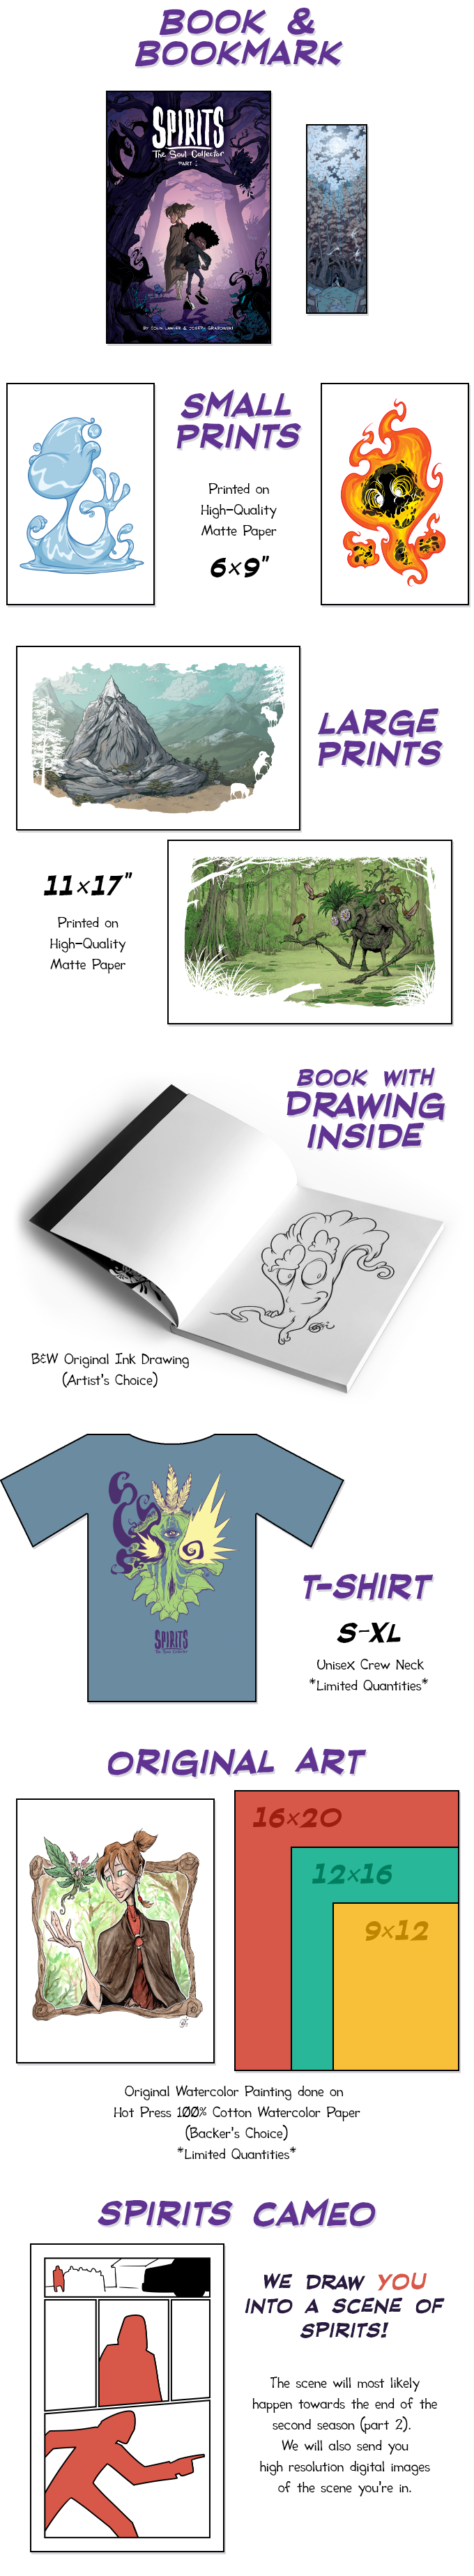 *Images displayed are mock-ups, final products may vary. Painting rewards are only intended for personal usage.